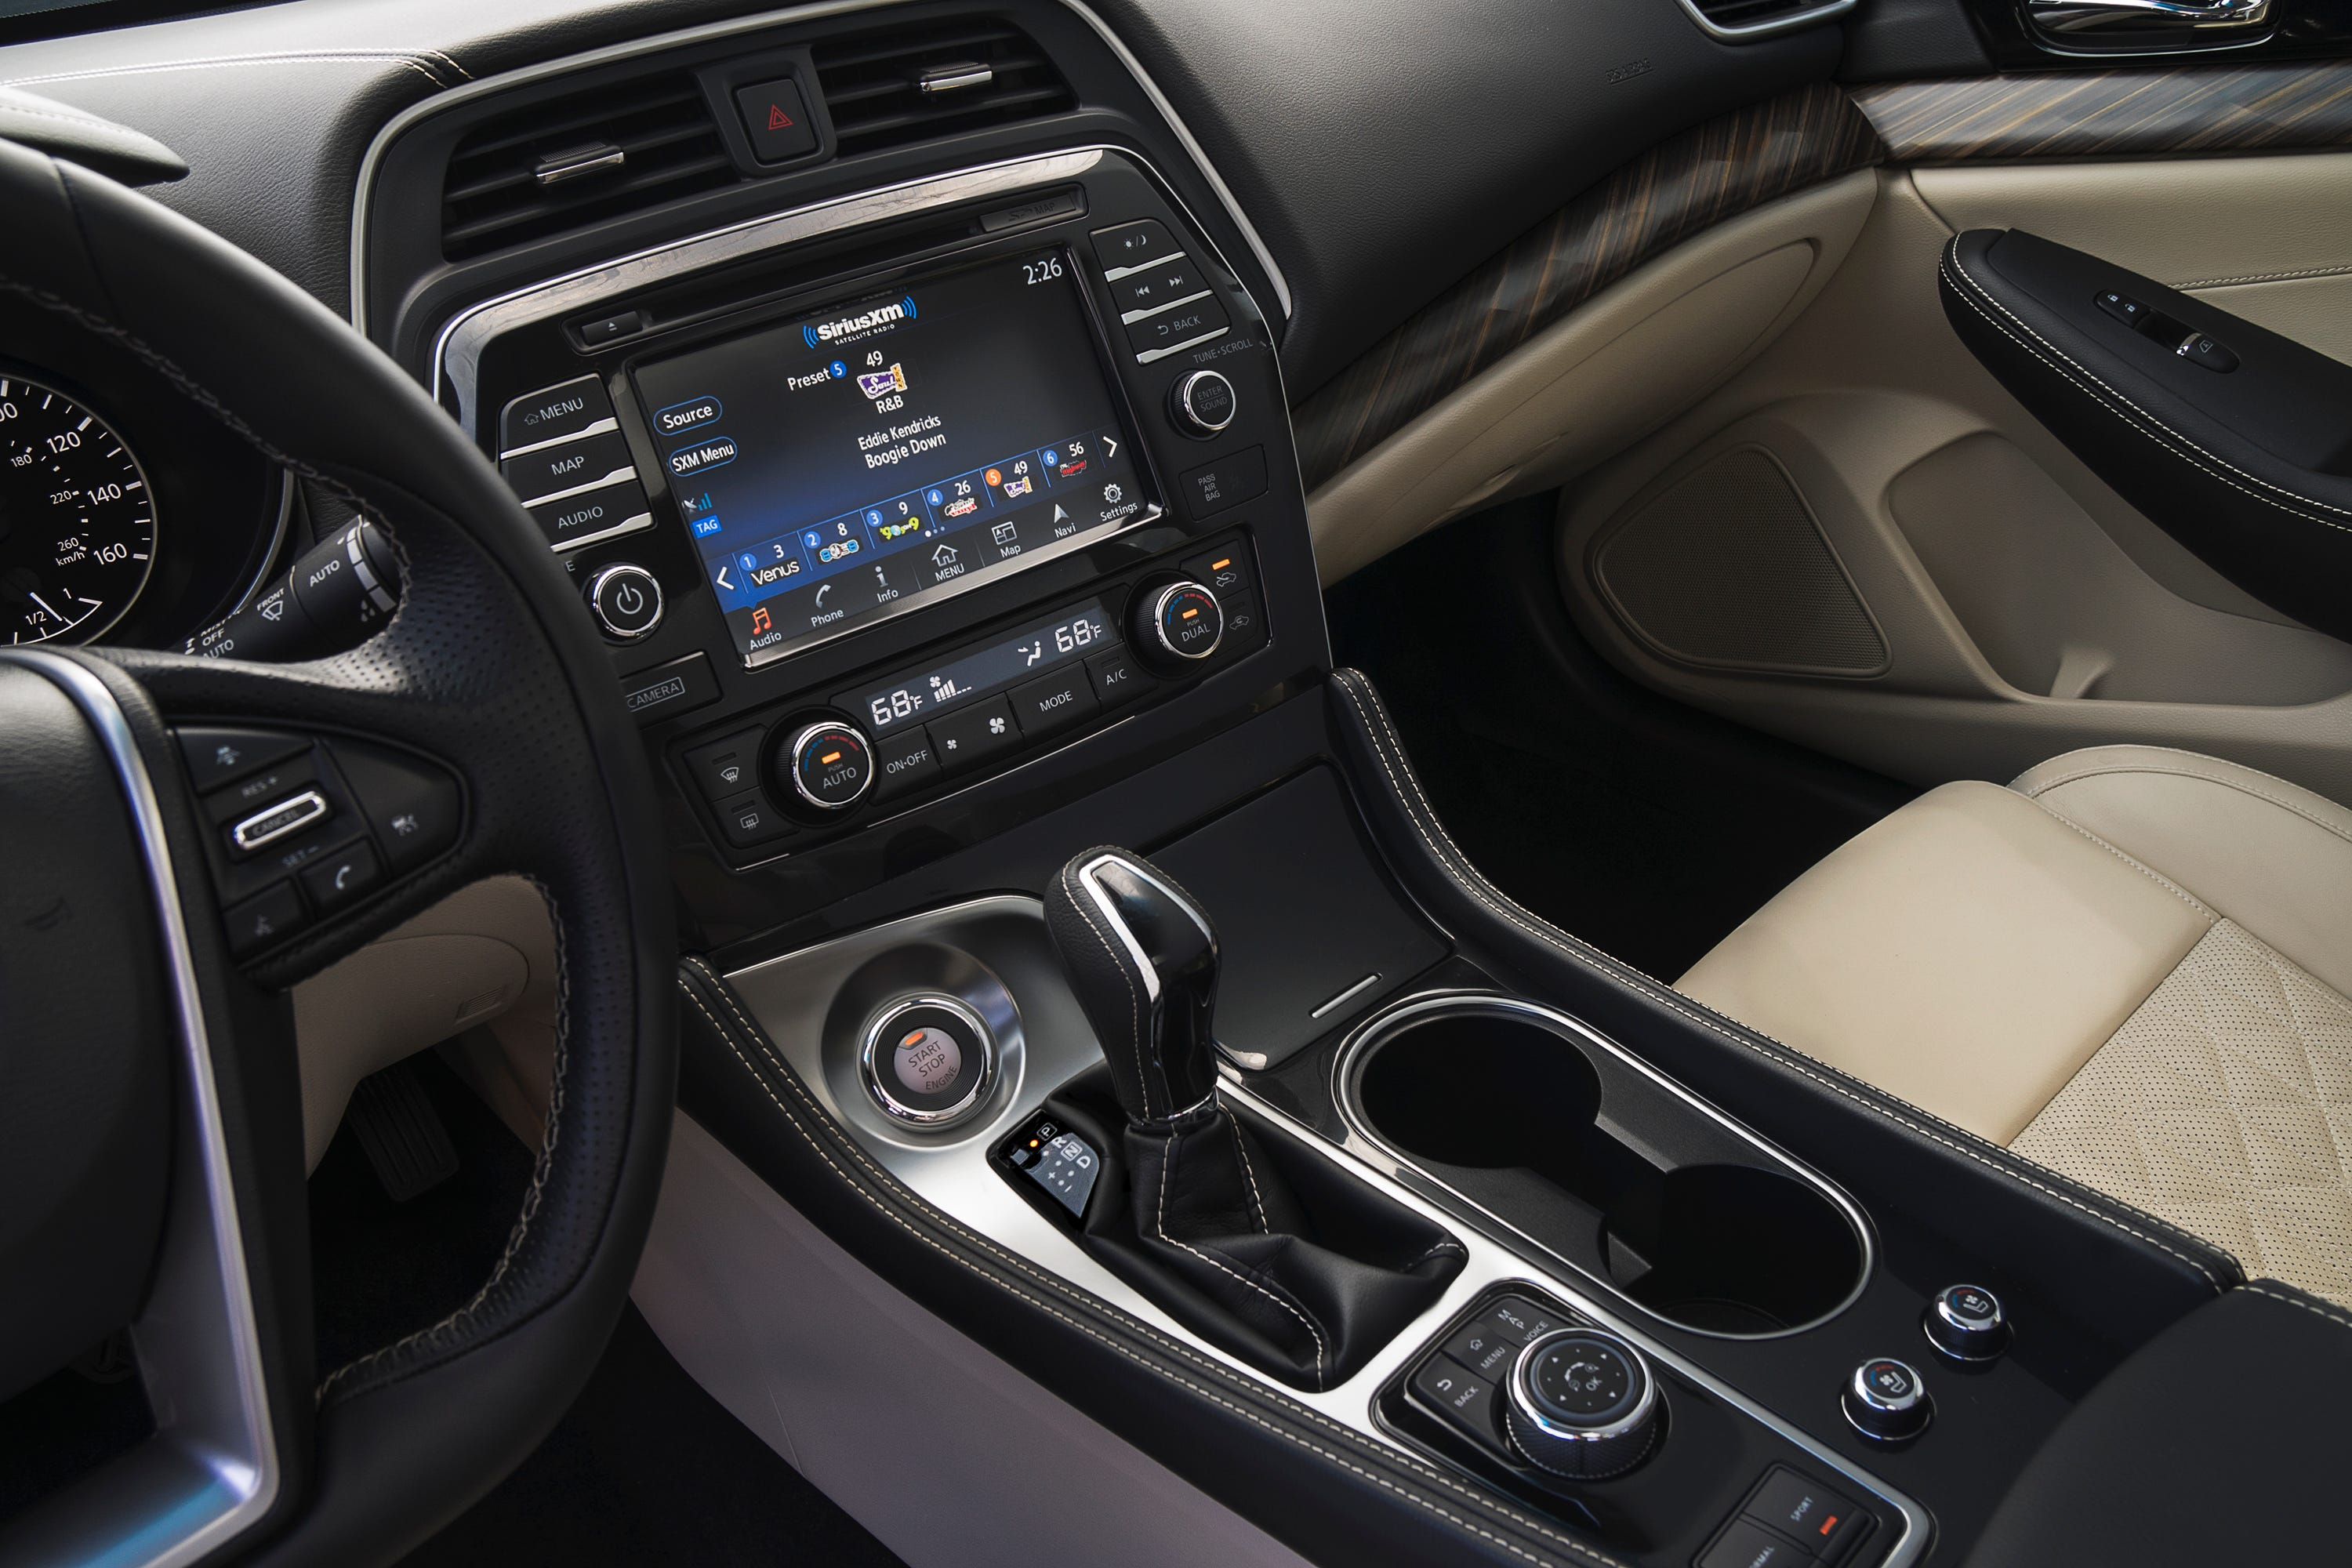 The 2016 Nissan Maxima Boasts A Roomy Interior, With